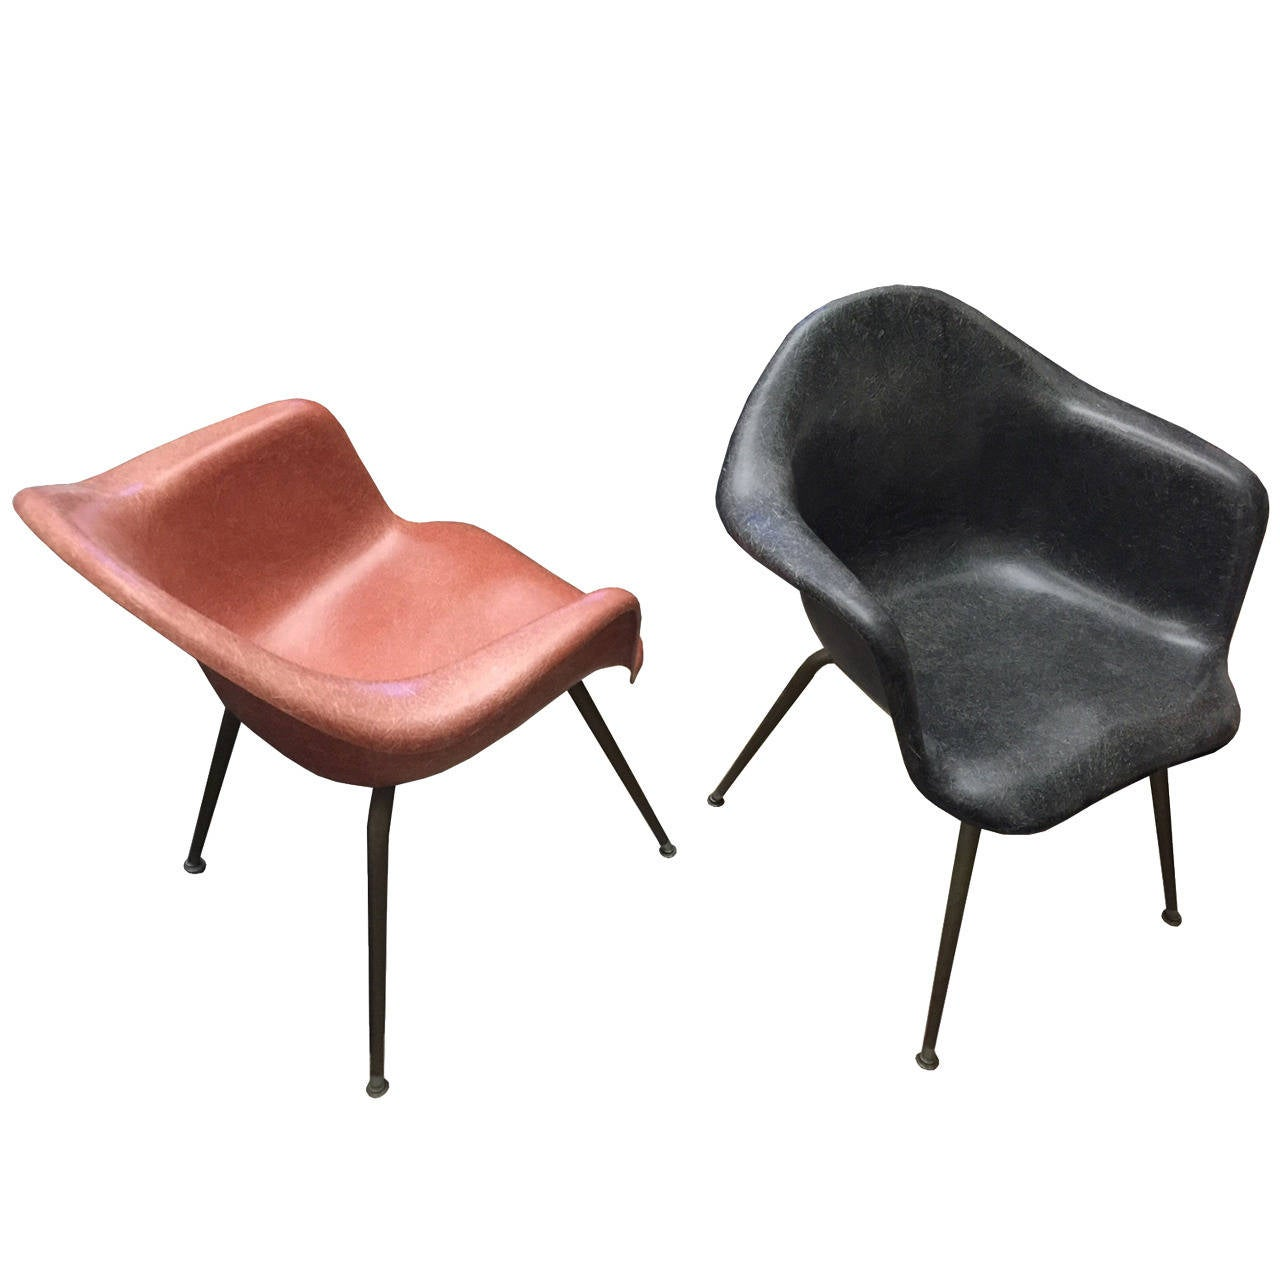 Mid Century Vintage Eames Era Fiberglass Shell Arm Chairs By ChromCraft For  Sale